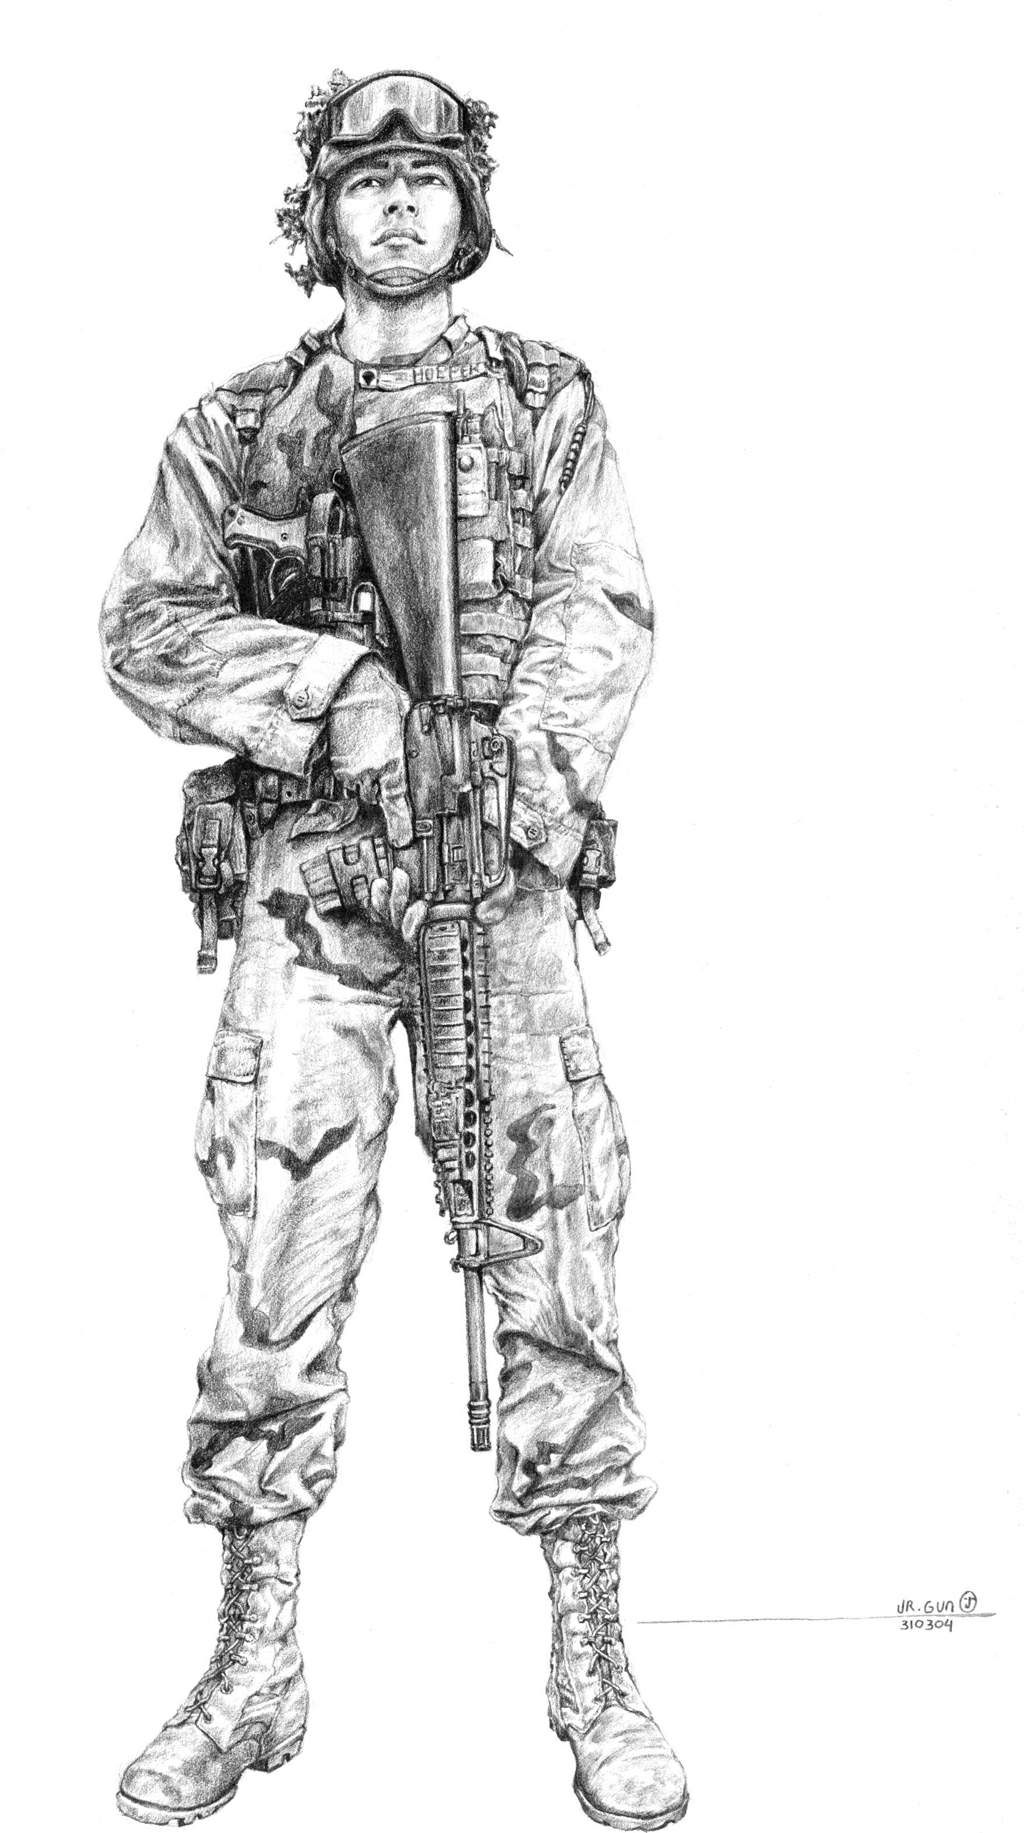 Drawn soldier at ease Soldier Realistic Images Quality Art